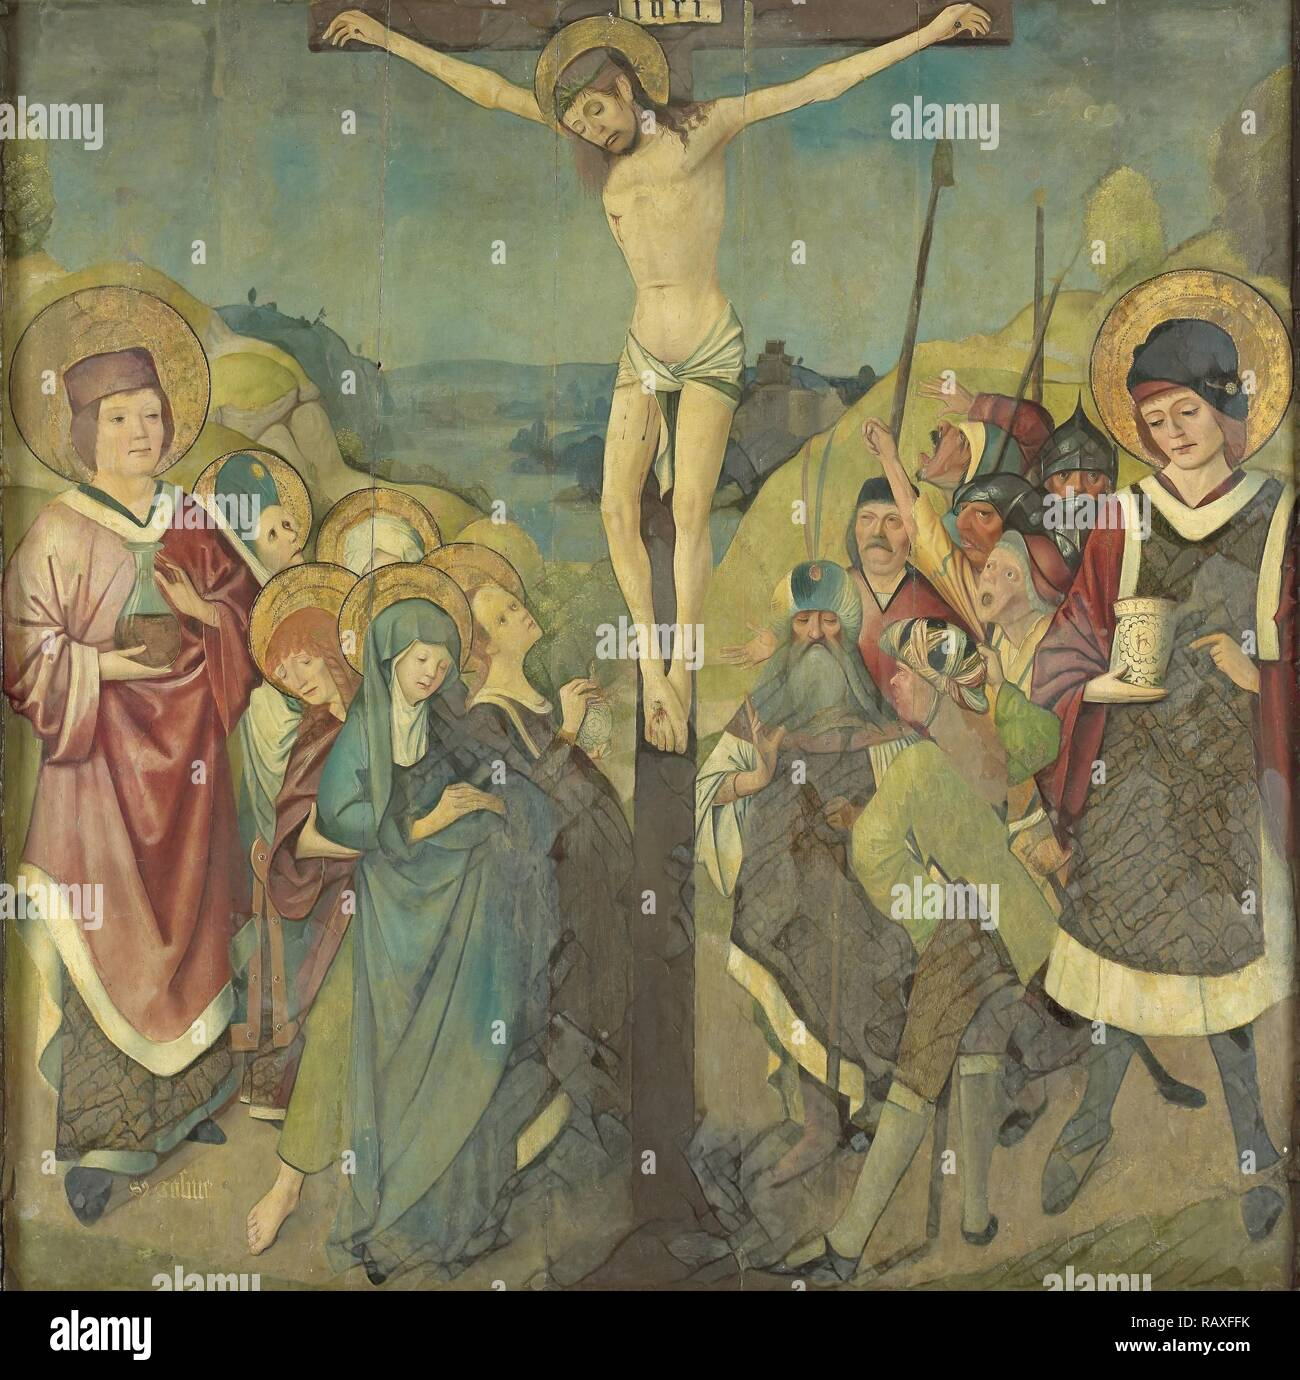 Crucifixion with Saints Cosmas and Damian, Anonymous, 1425 - 1449. Reimagined by Gibon. Classic art with a modern reimagined - Stock Image